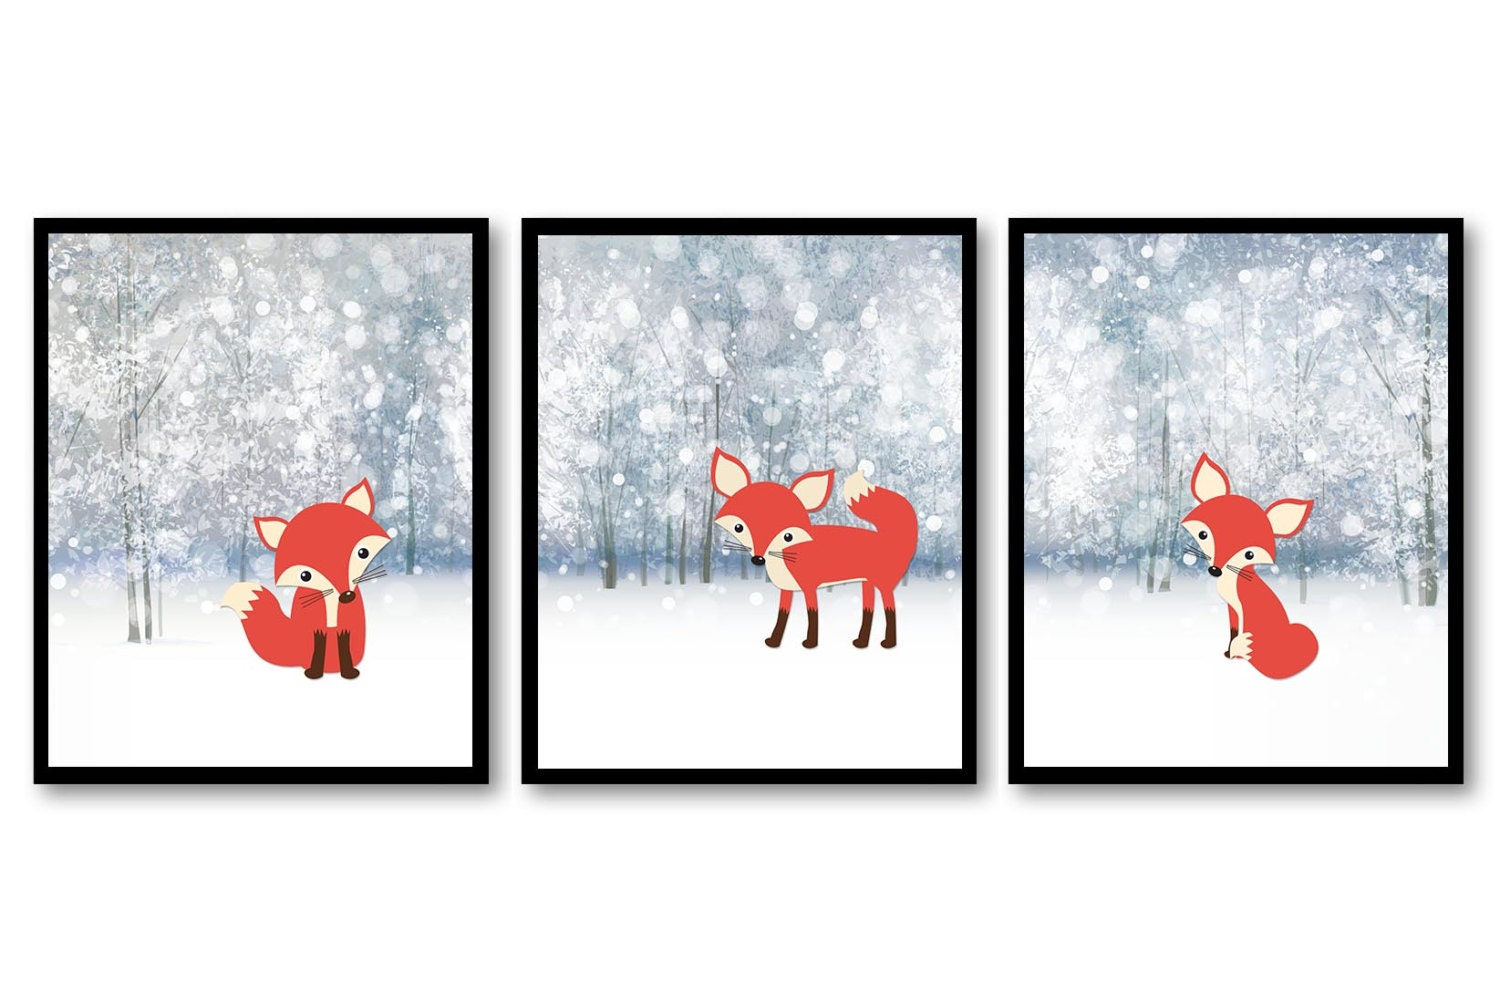 Fox Nursery Art Woodland Tree Nature Landscape Prints Set of 3 Baby Wall Decor Foxes Forest Woodland